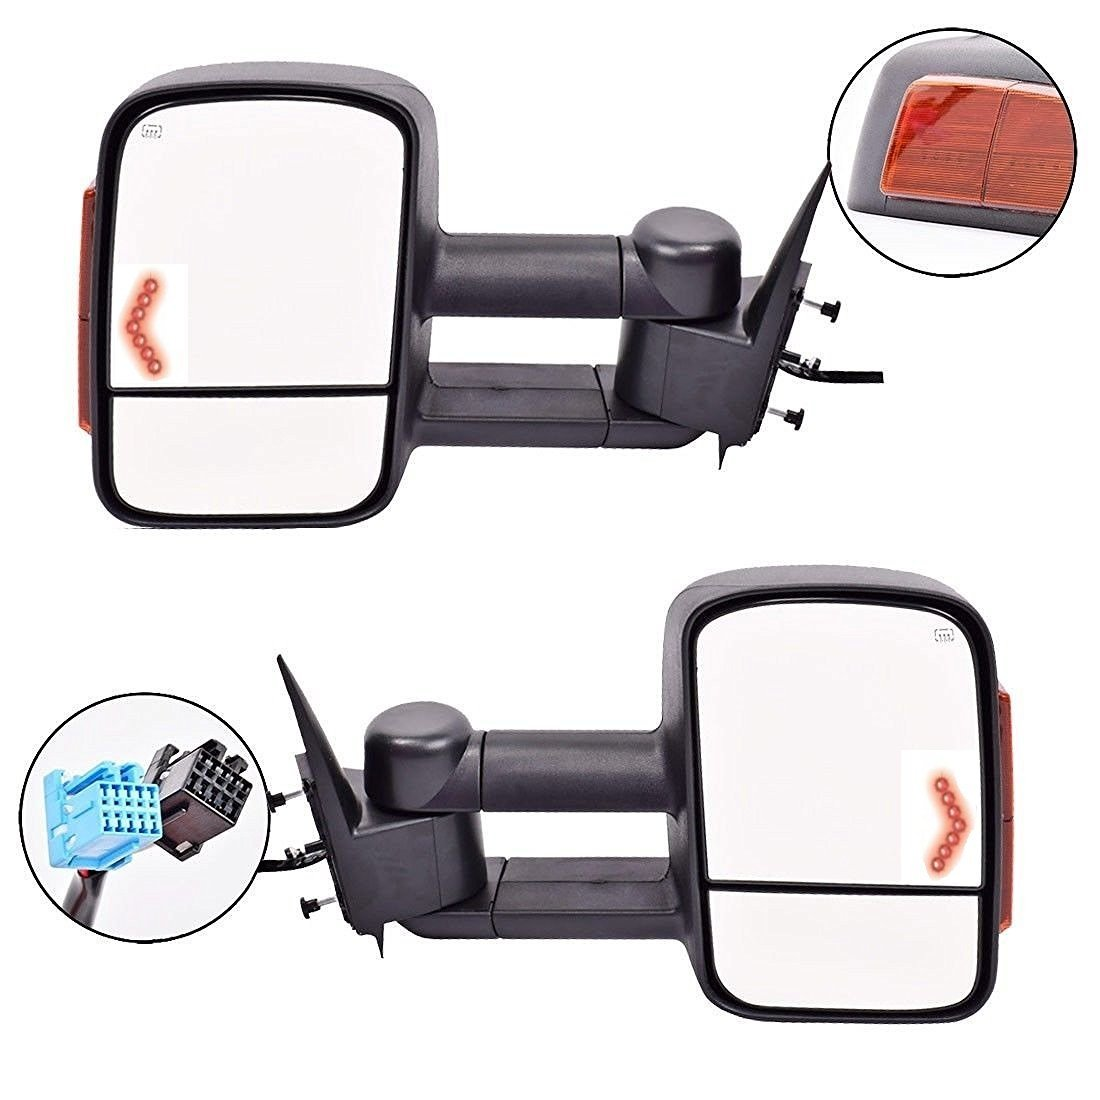 Scitoo Power Heated Side Lights Arrow Turn Signals Side View Mirrors for 03-06 (07 classic) Chevy/GMC Silverado/Sierra Telescoping Towing Mirror Pair Set